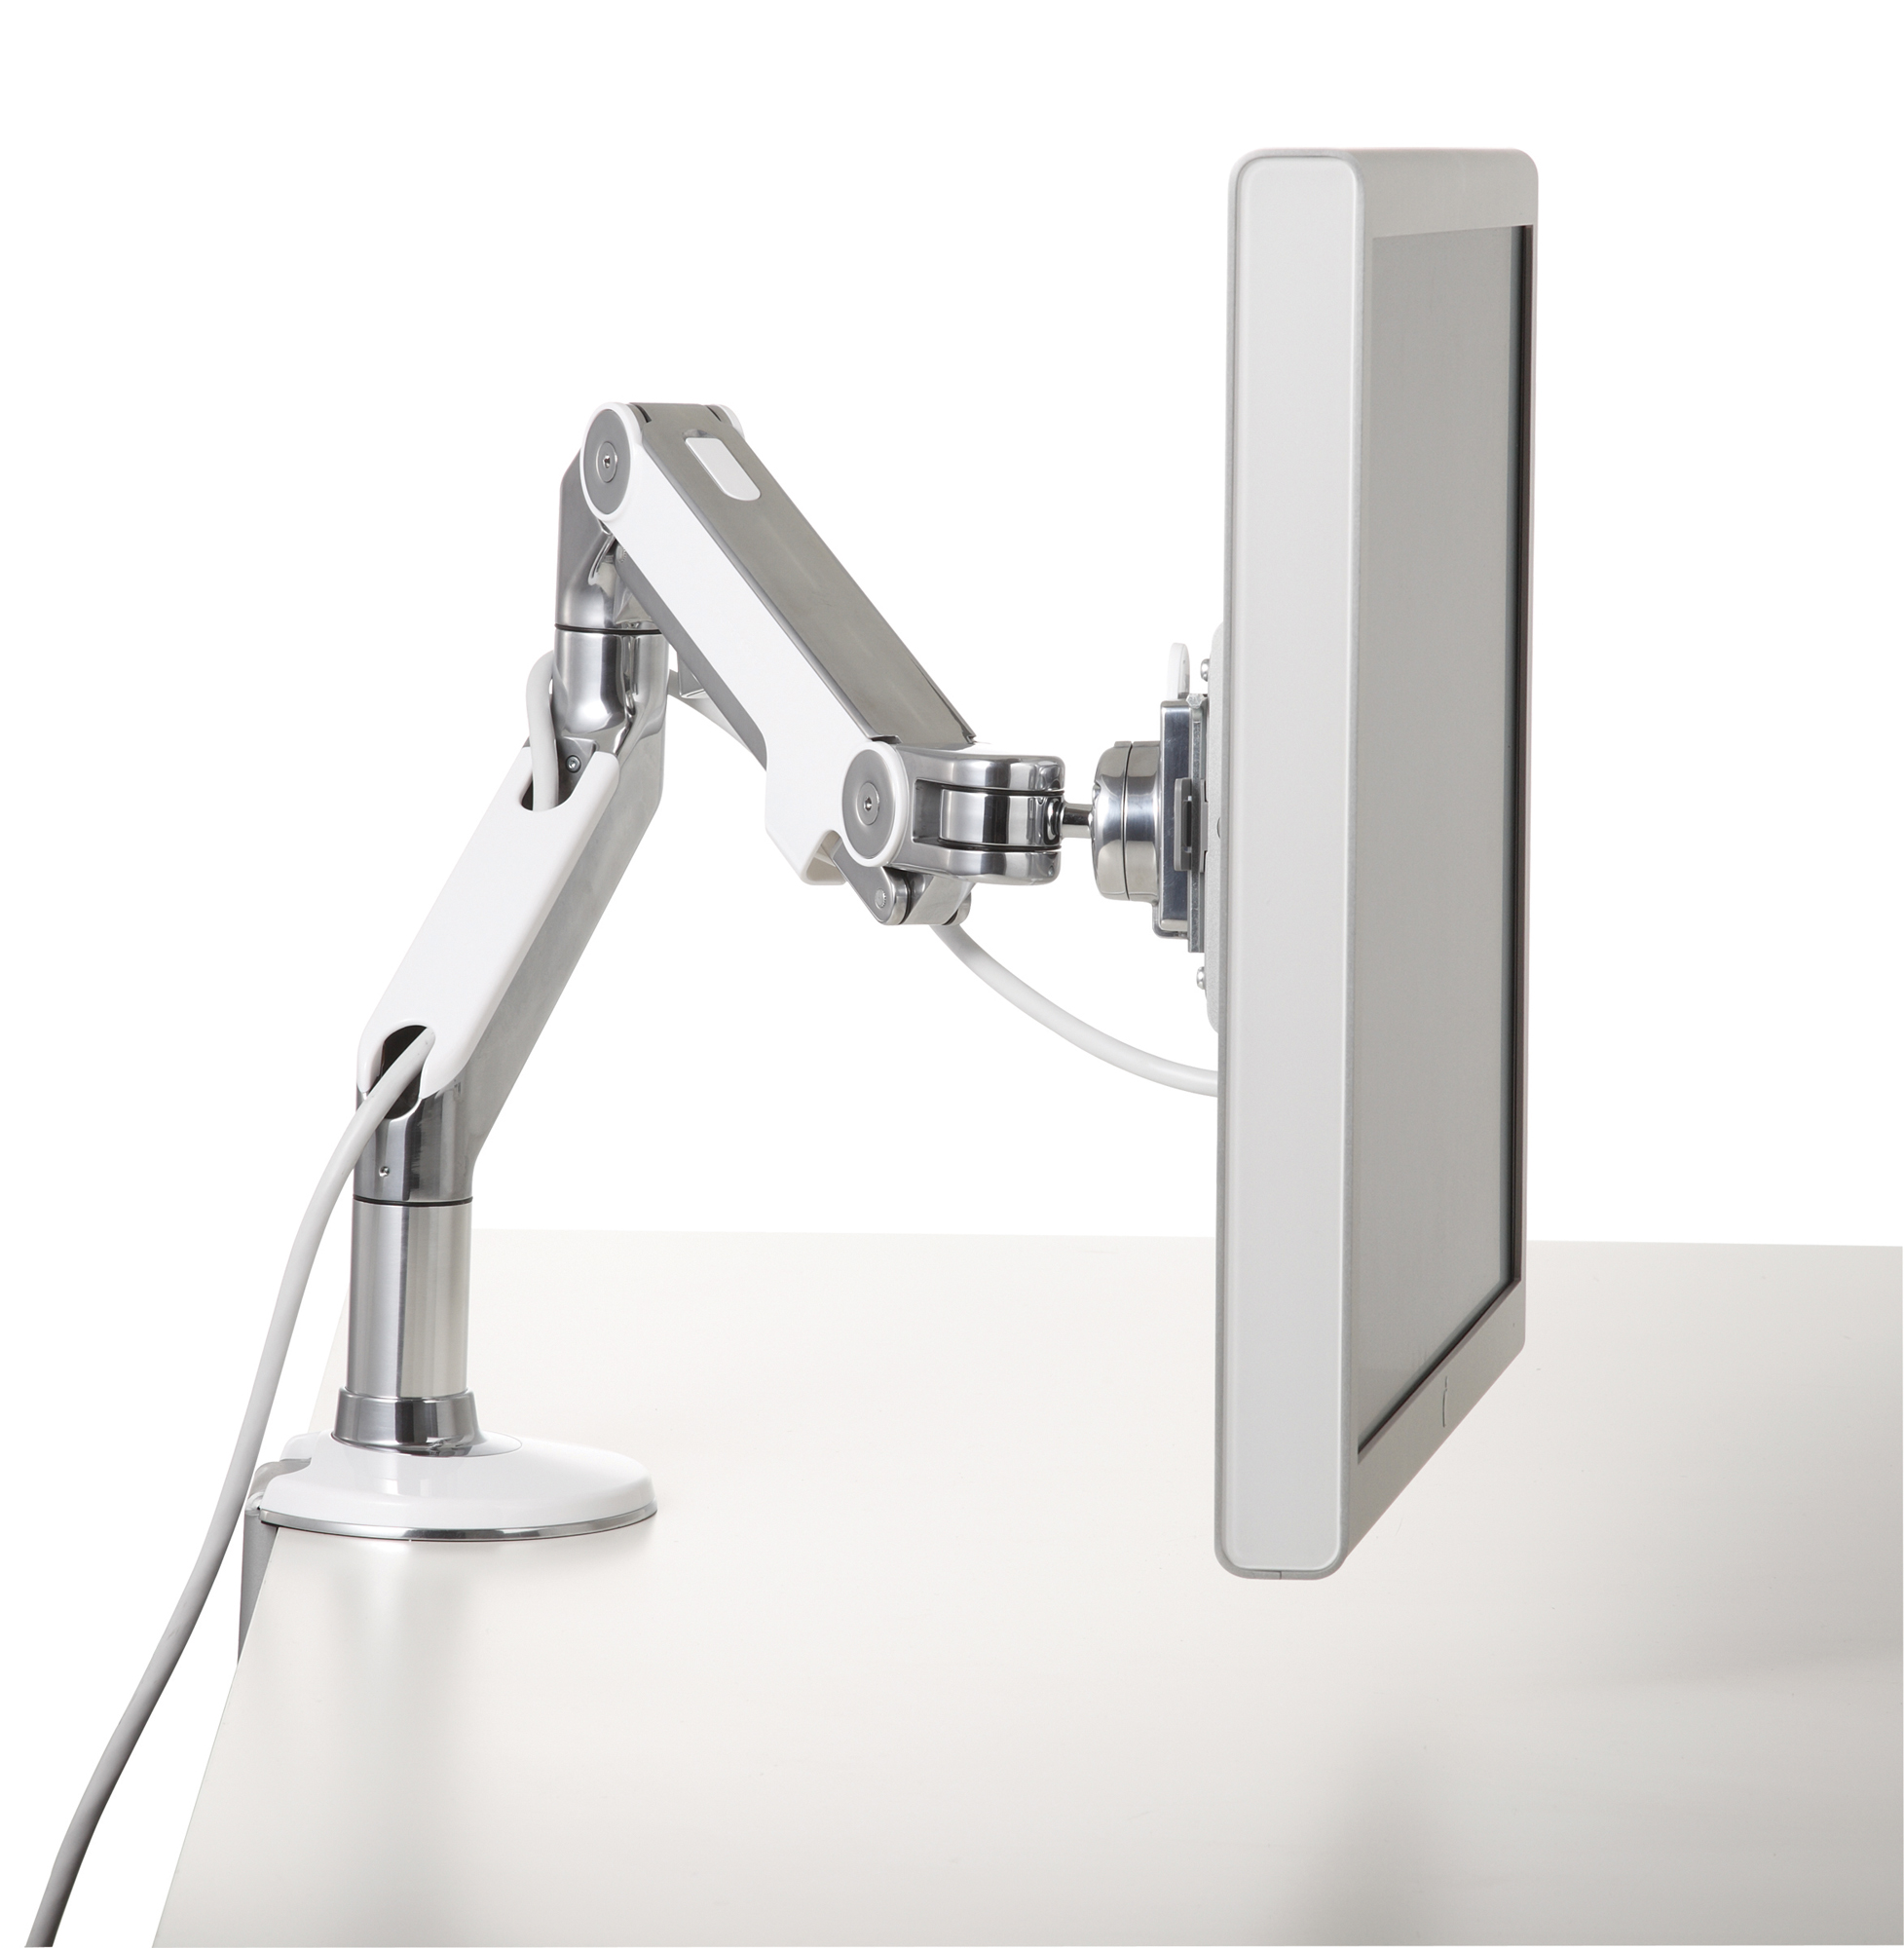 M8 Balljoint Monitor-arm